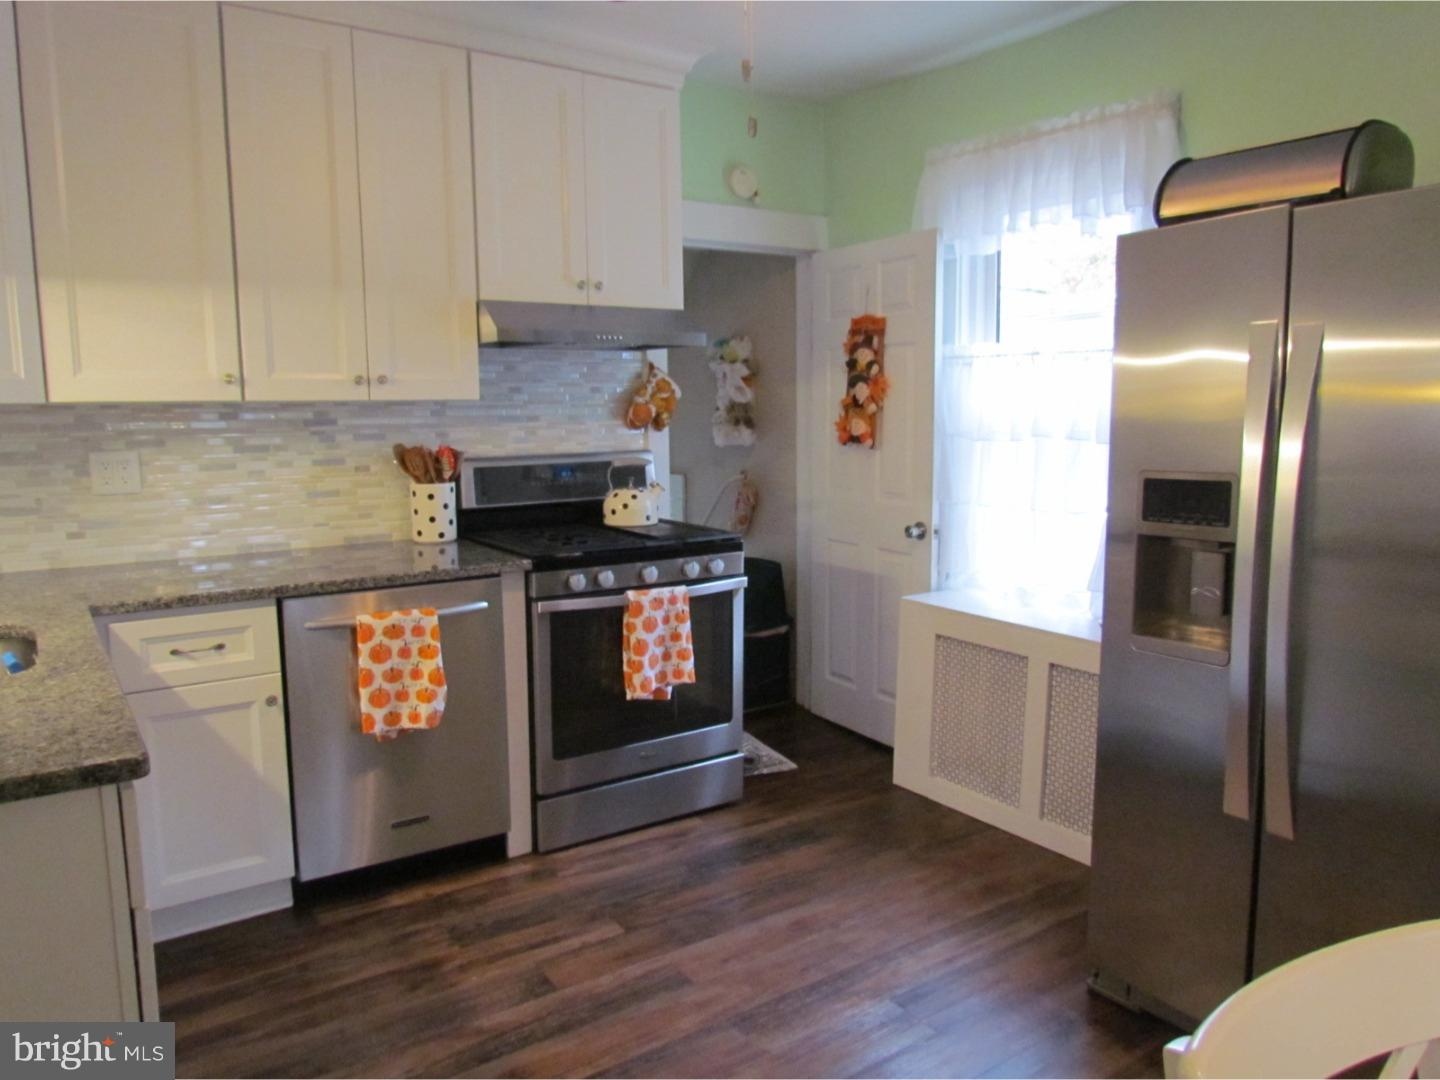 Single Family Home for Sale at 1301 WALNUT Avenue Haddon Township, New Jersey 08107 United States